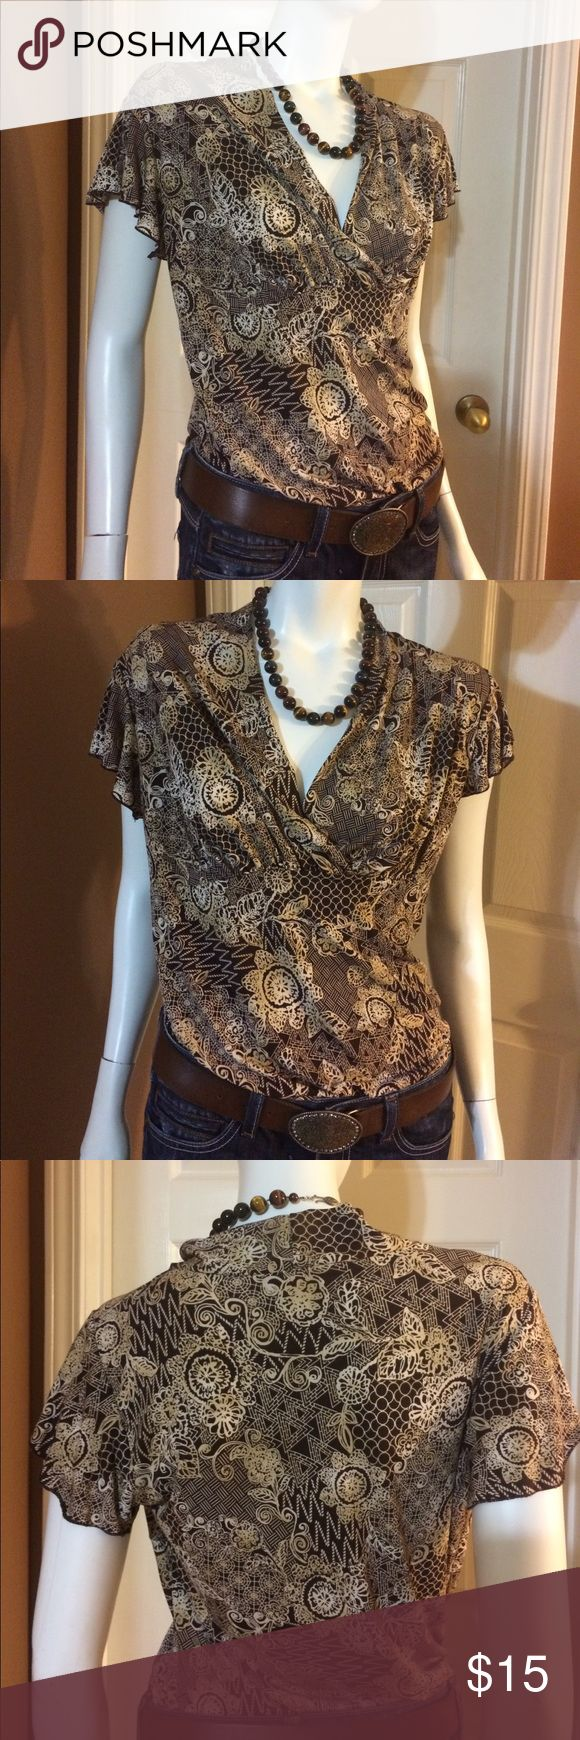 🔅BOGO🔅Brown And Cream Short Sleeve JKLA Top Gently worn. Size large Brown And Cream Short Sleeve JKLA Top. 92% polyester, 8% spandex.  Top is approximately 26 inches long and 19 inches from armpit to armpit.  No rips, stains or tears. Non-smoking home. JKLA Tops